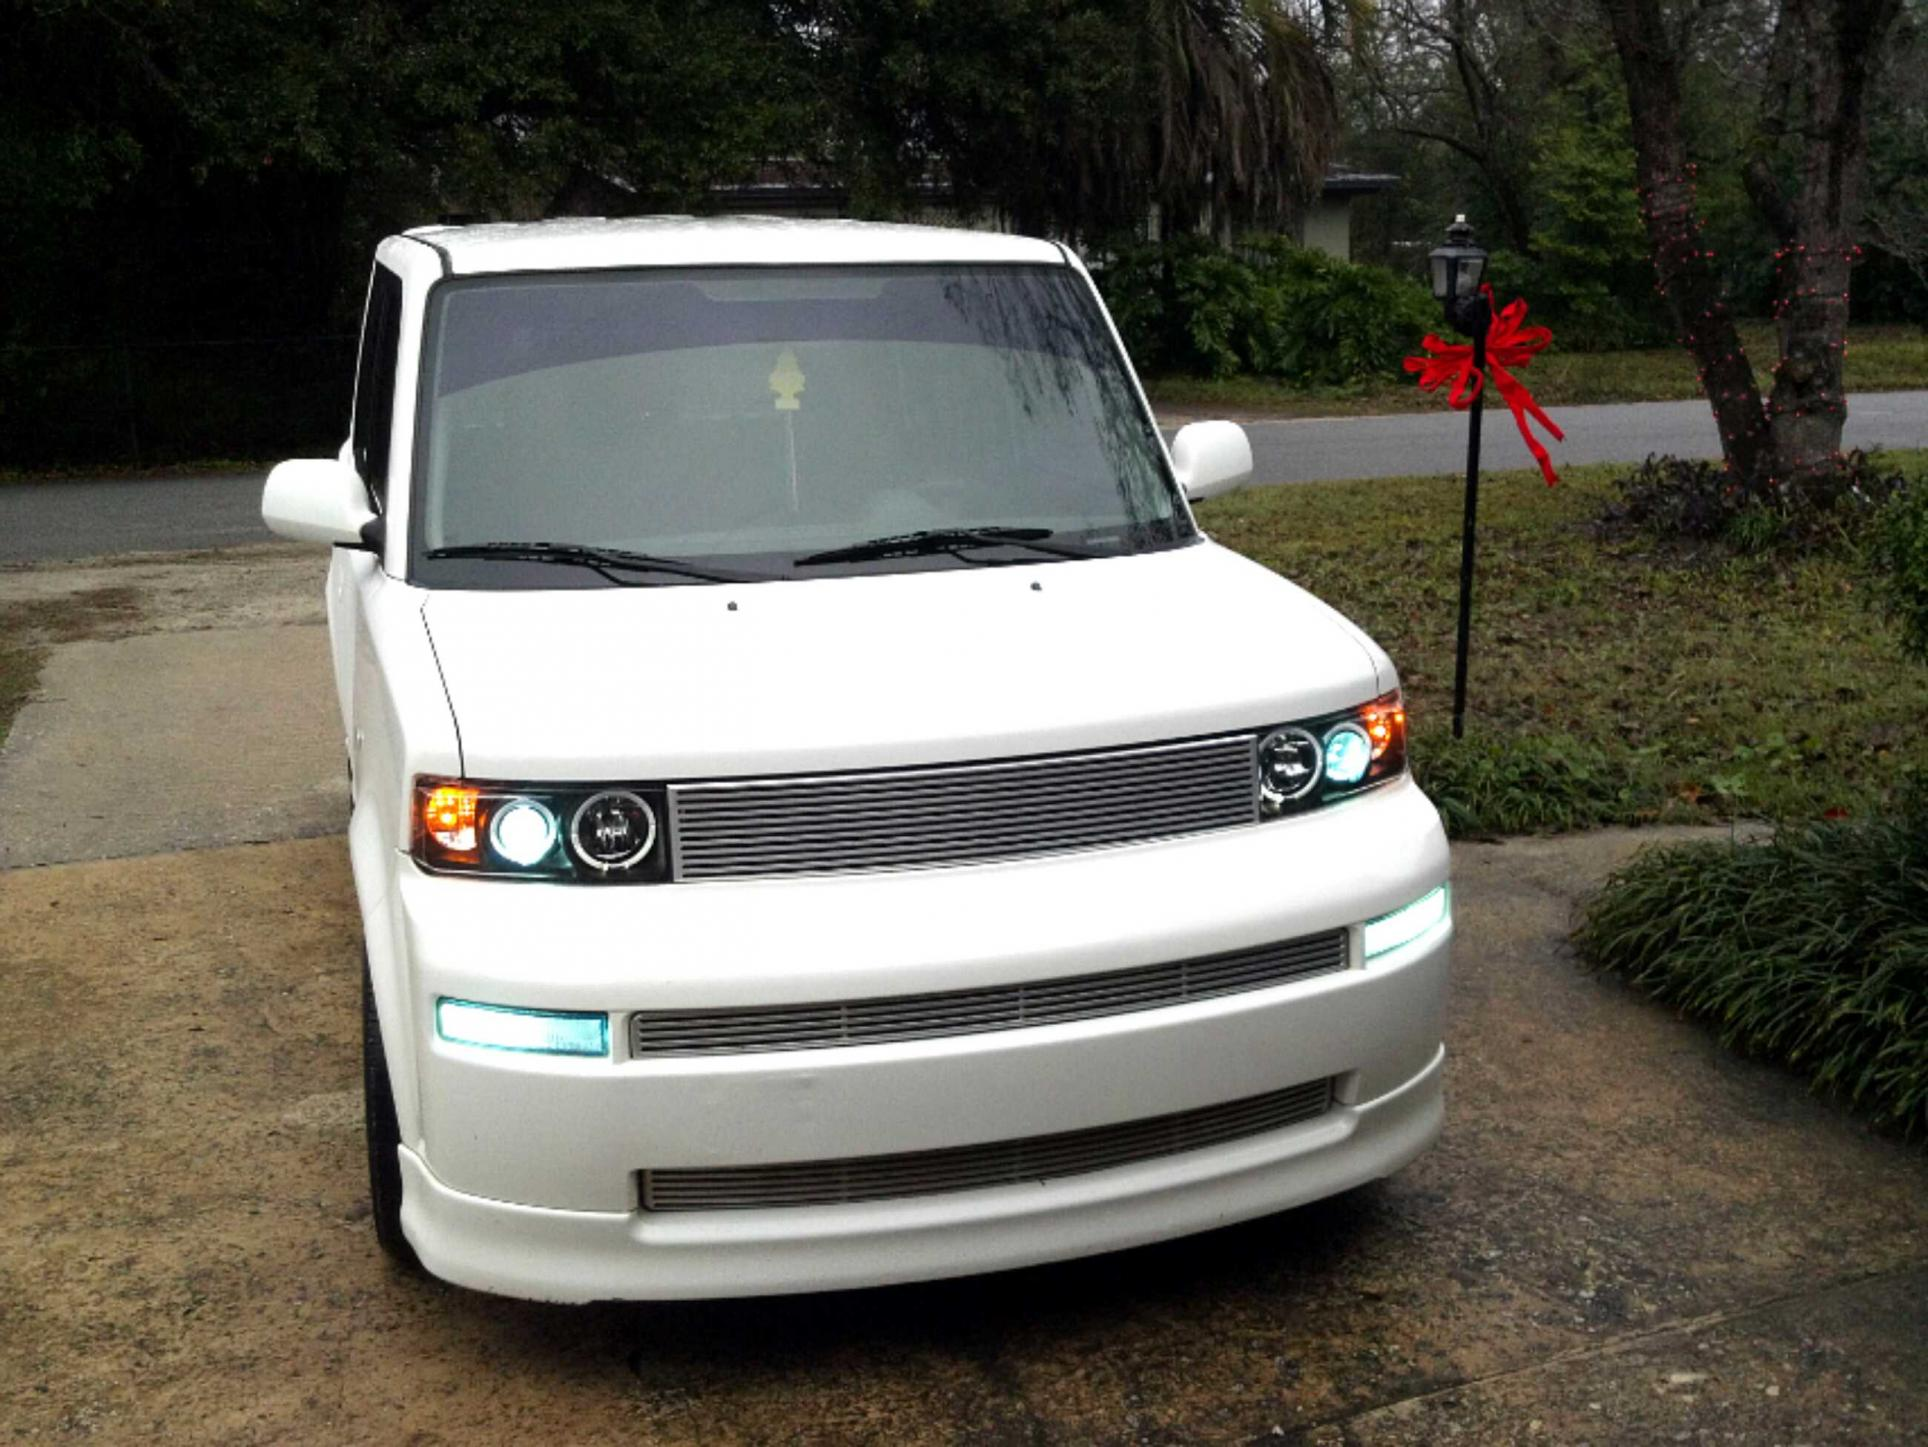 1st Gen Scion Xb Getting Painted This Week Scion Xb Forum